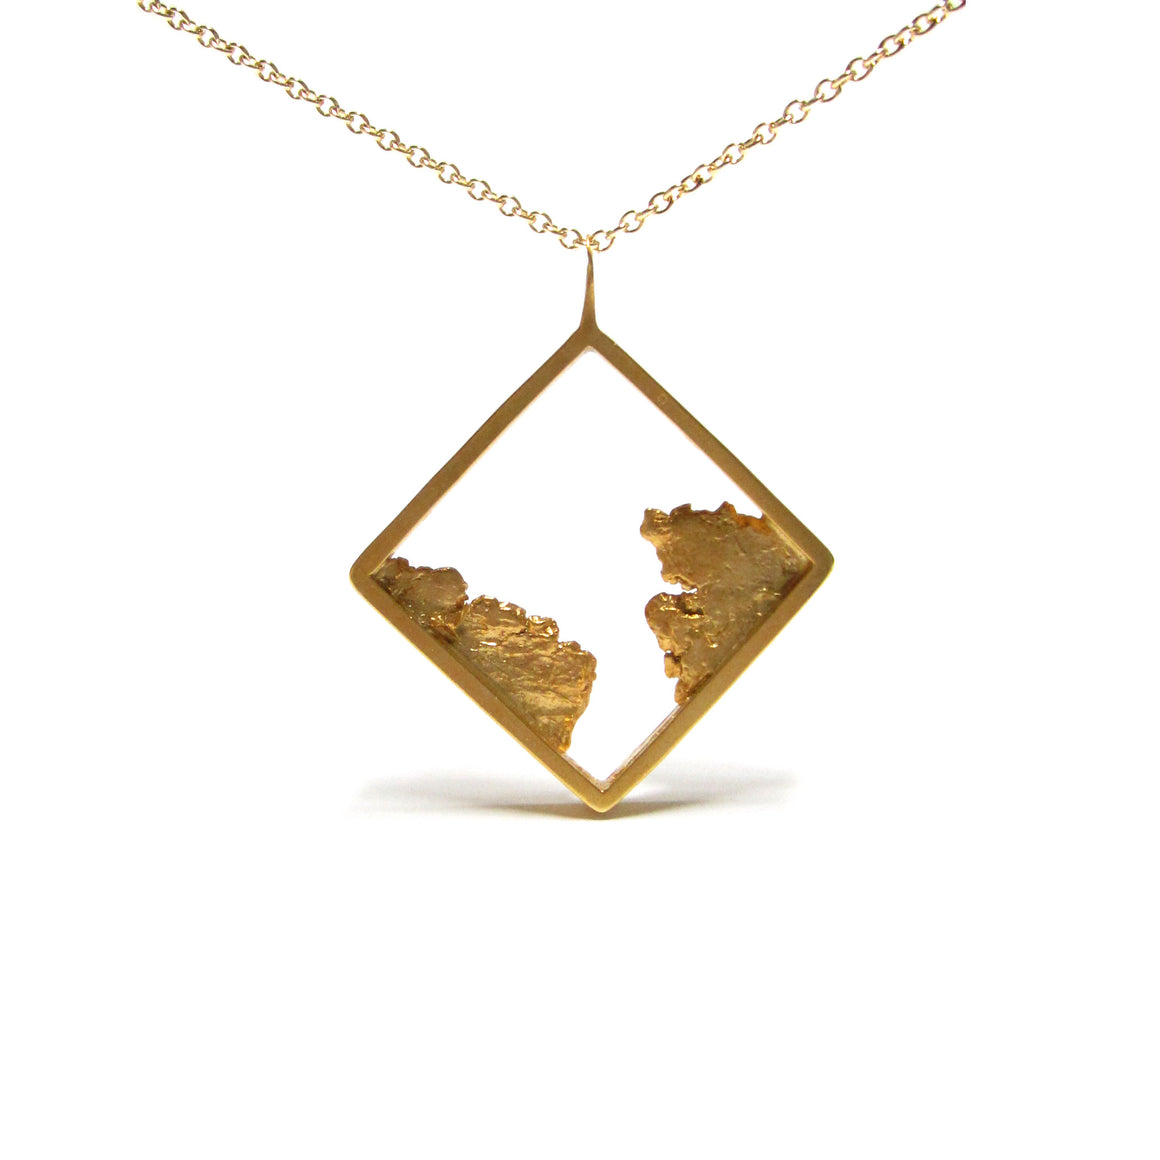 Seth Papac Torn Square Pendant - Gold plated sterling silver